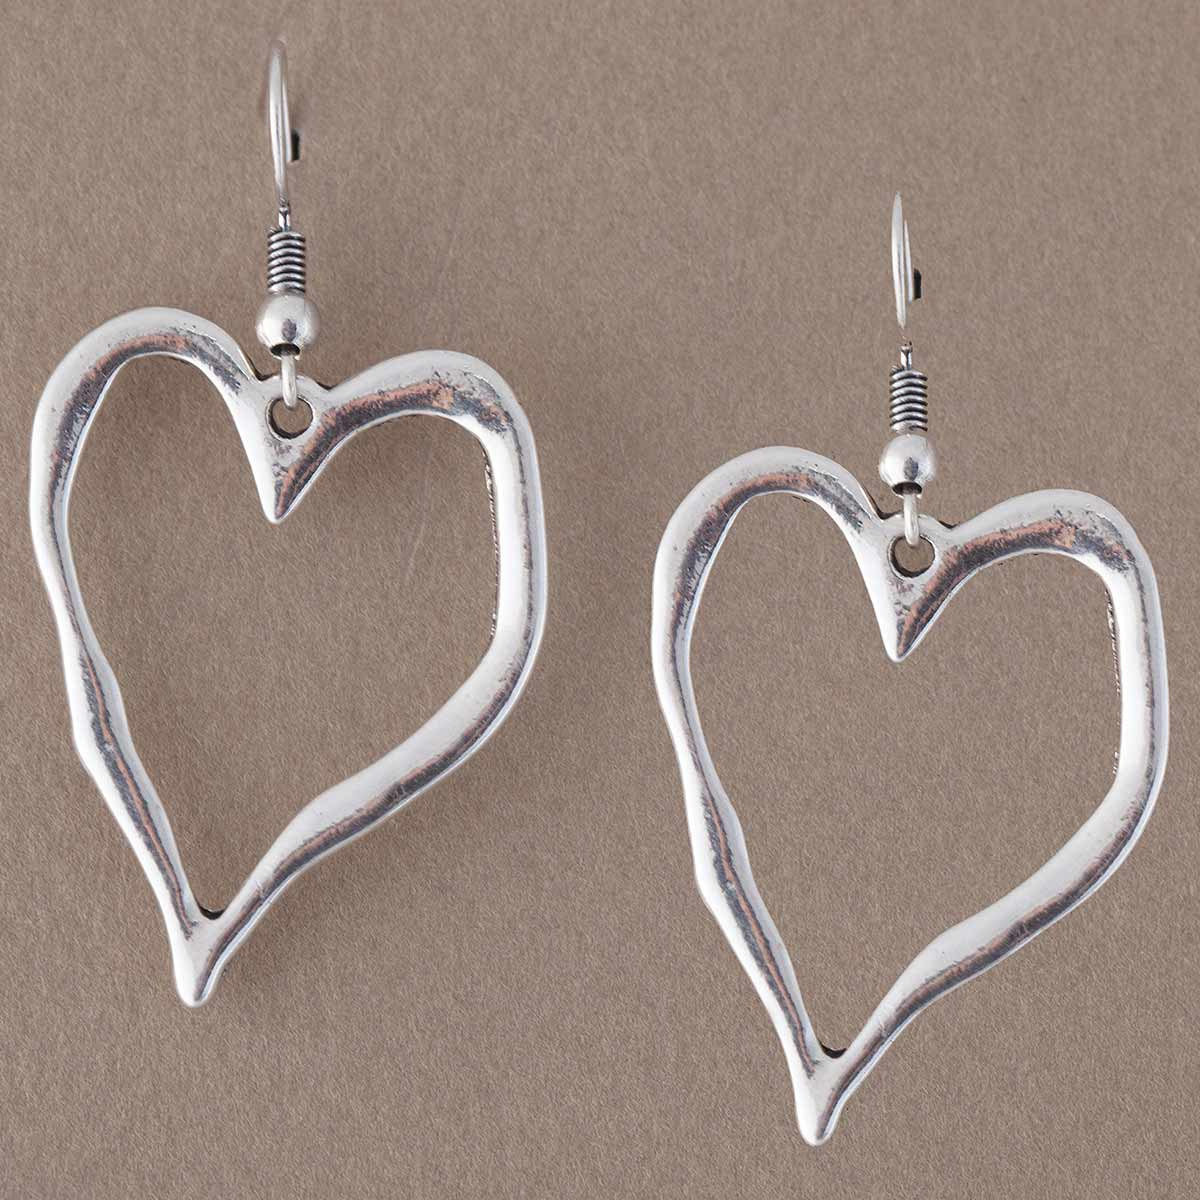 "SILVER 2""X1"" HEART WIRE EARRINGS"